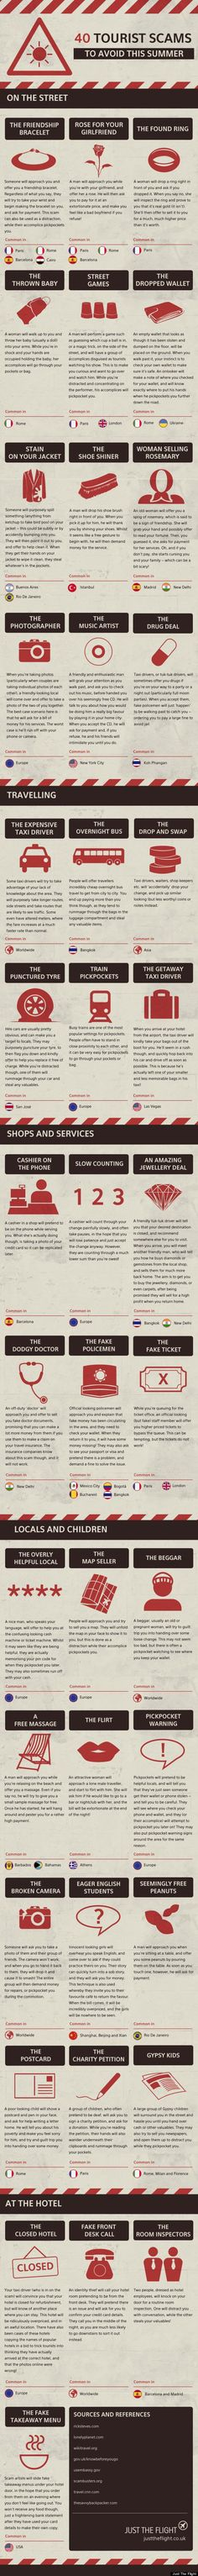 Thinking about traveling this summer? We get warned every year, but watch out for tourist scams when traveling abroad. Check out this very cool infographic that tells you just about every tourist scam in existence. Travel Info, Travel Advice, Time Travel, Travel Tips, Travel Hacks, Summer Travel, Travel Deals, Solo Travel, Oh The Places You'll Go